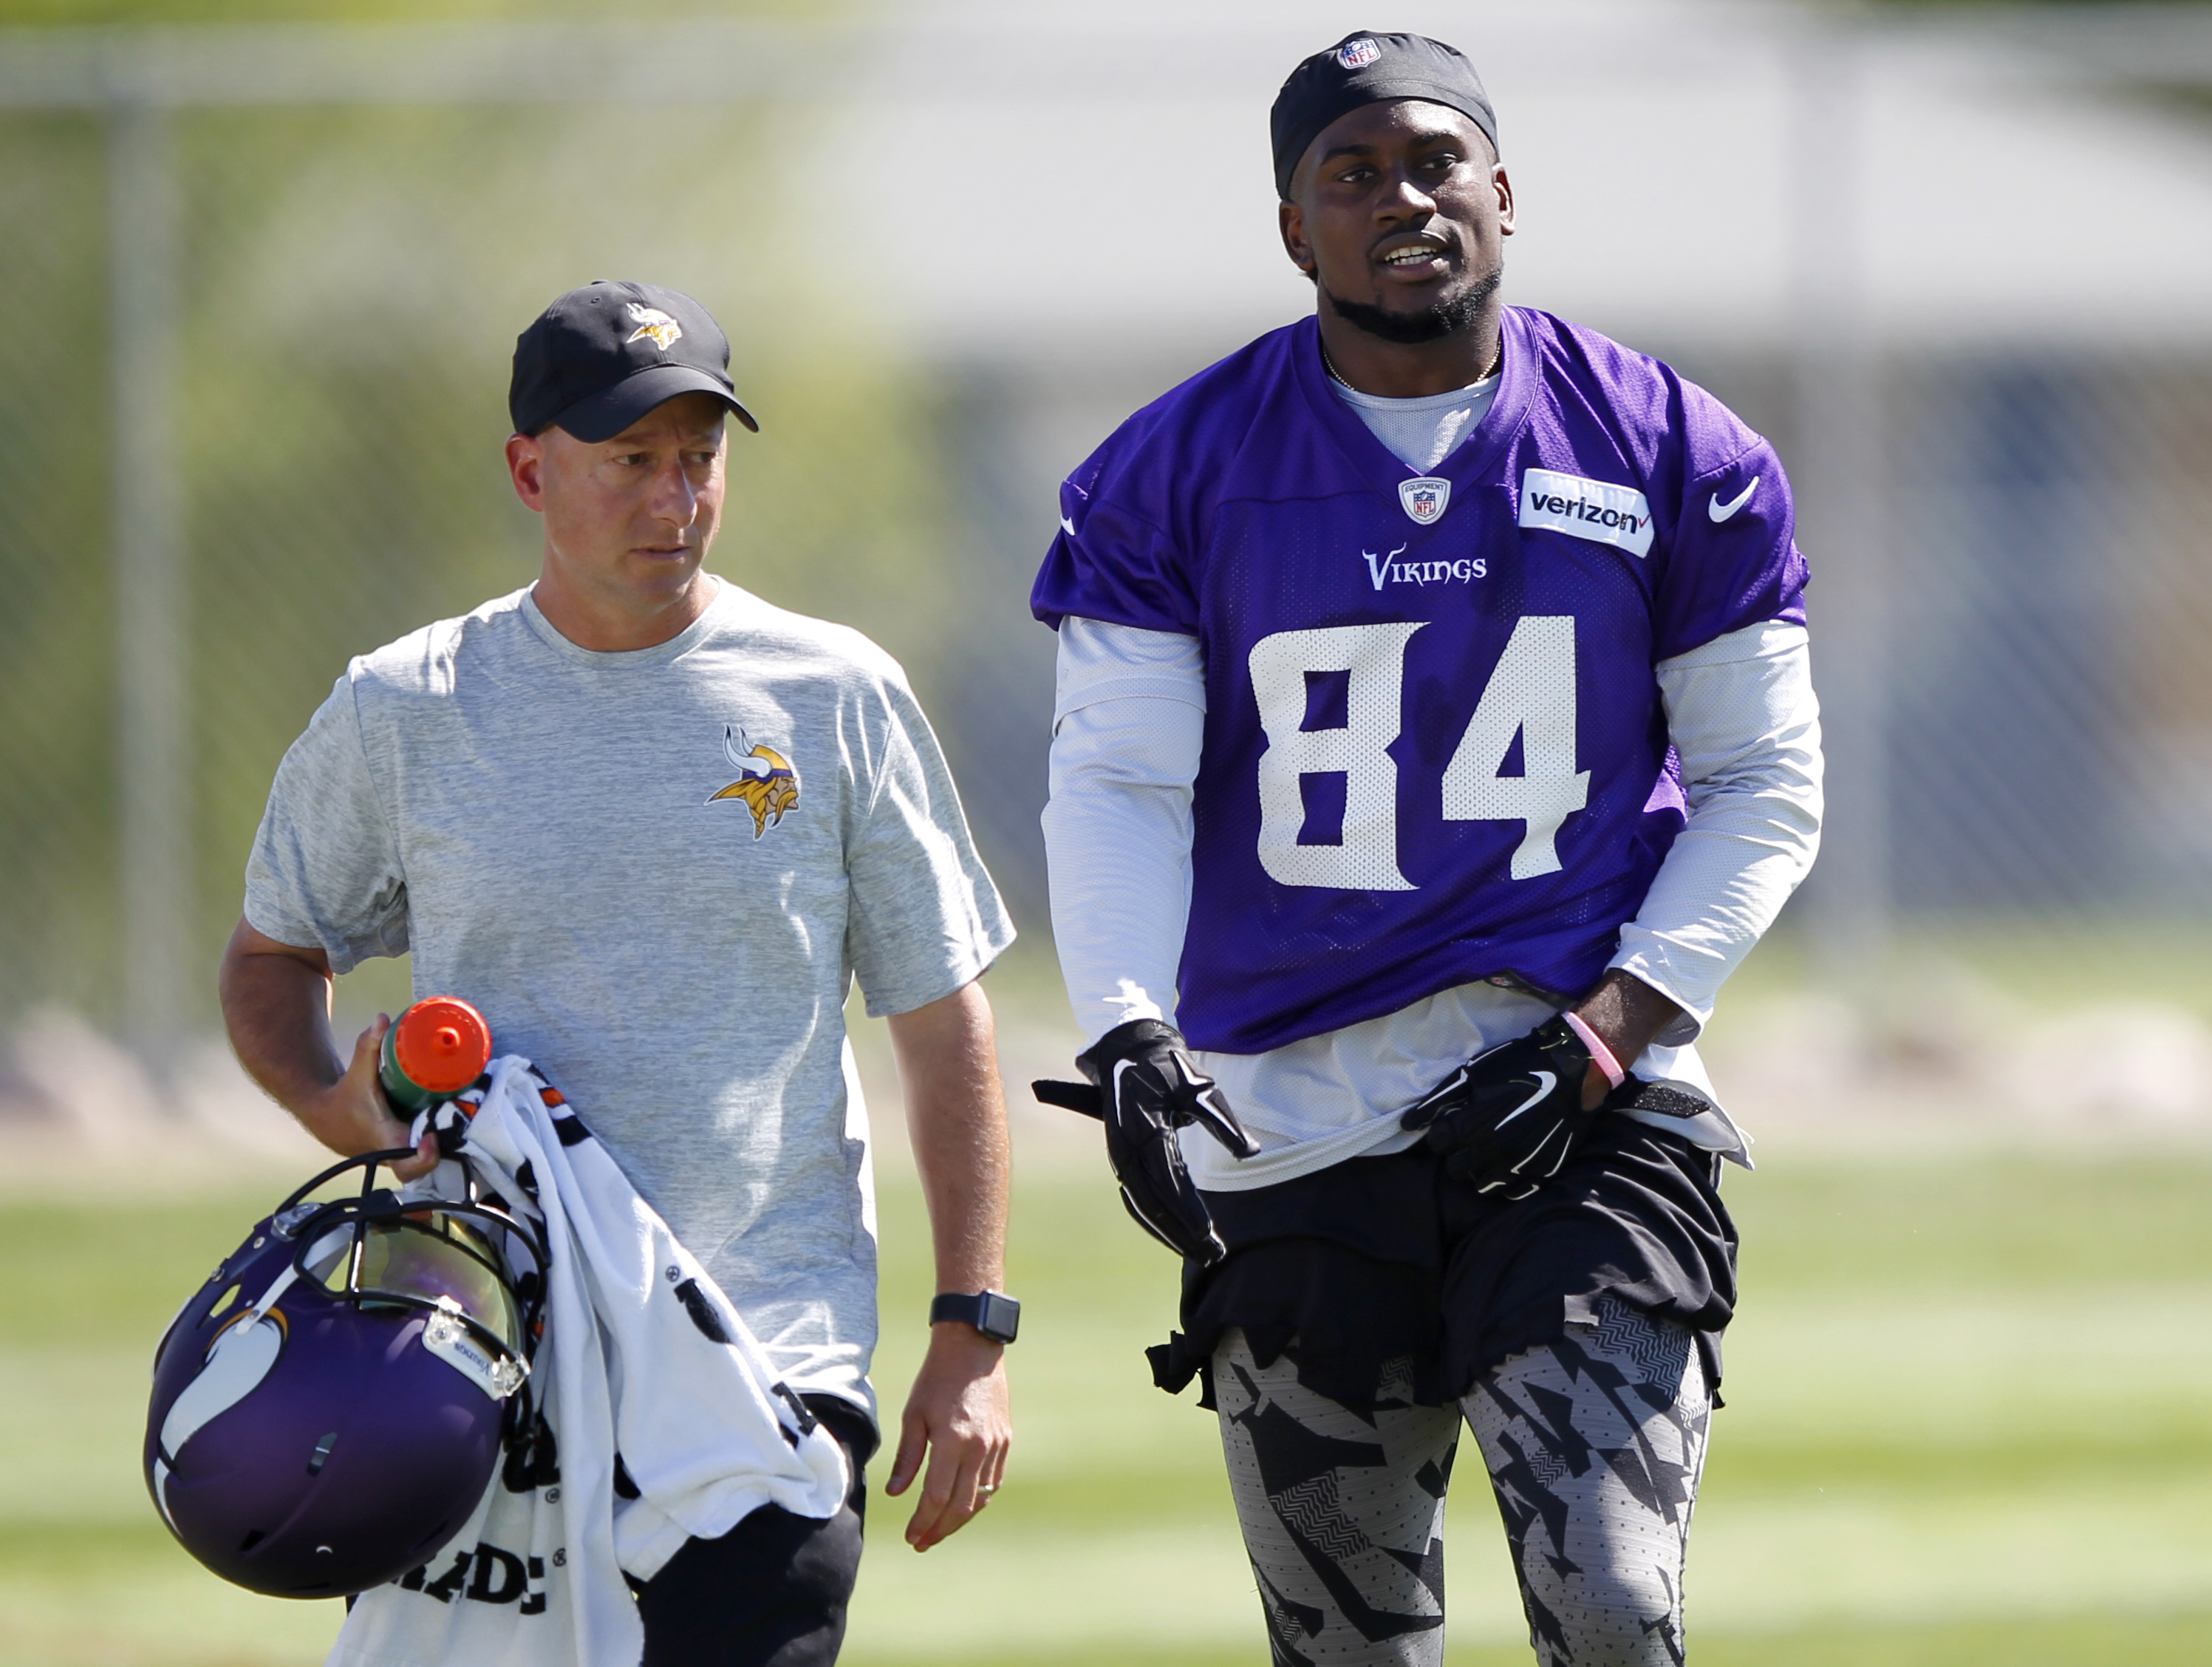 Minnesota Vikings wide receiver Cordarrelle Patterson (84) is escorted off the field with a trainer after Patterson was shaken up during the first day of the NFL football team's training camp at Mankato State University in Mankato, Minn., on Friday, July,